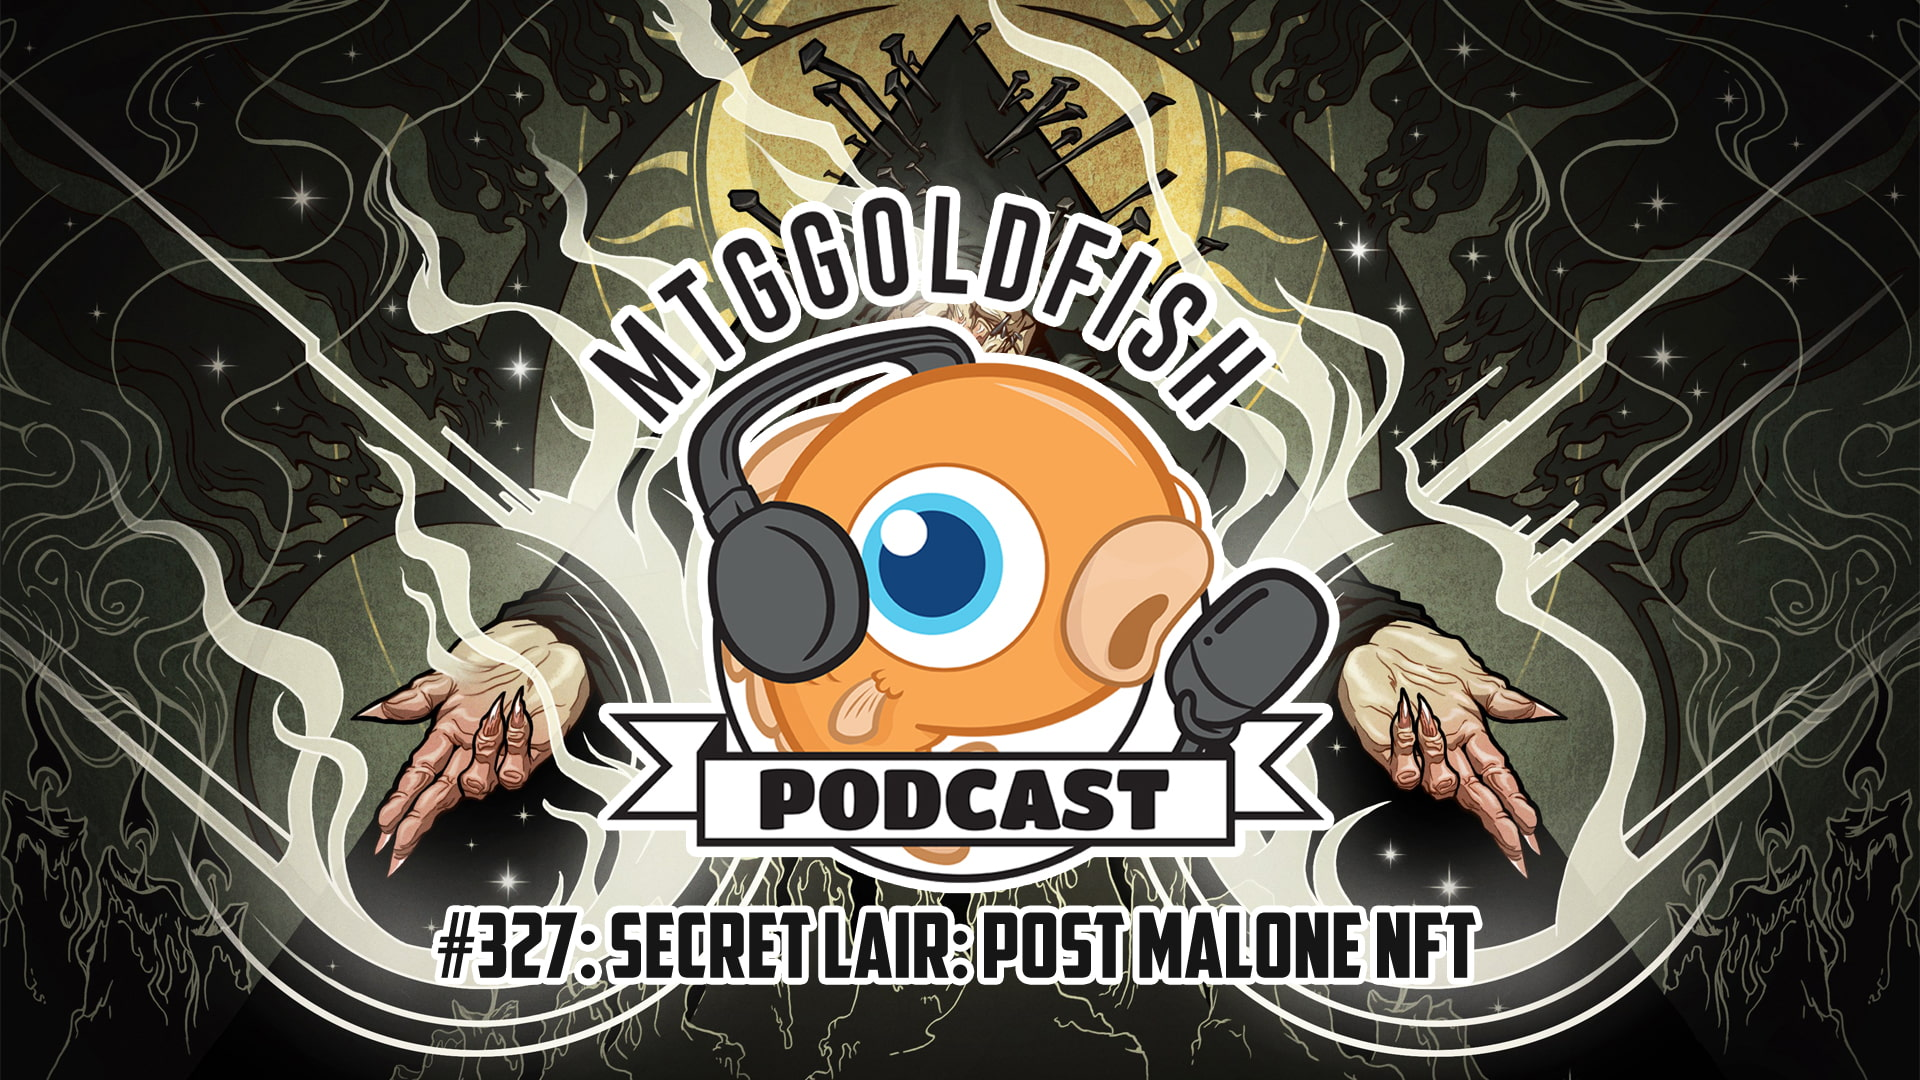 Image for Podcast 327: Secret Lair: Post Malone NFTs